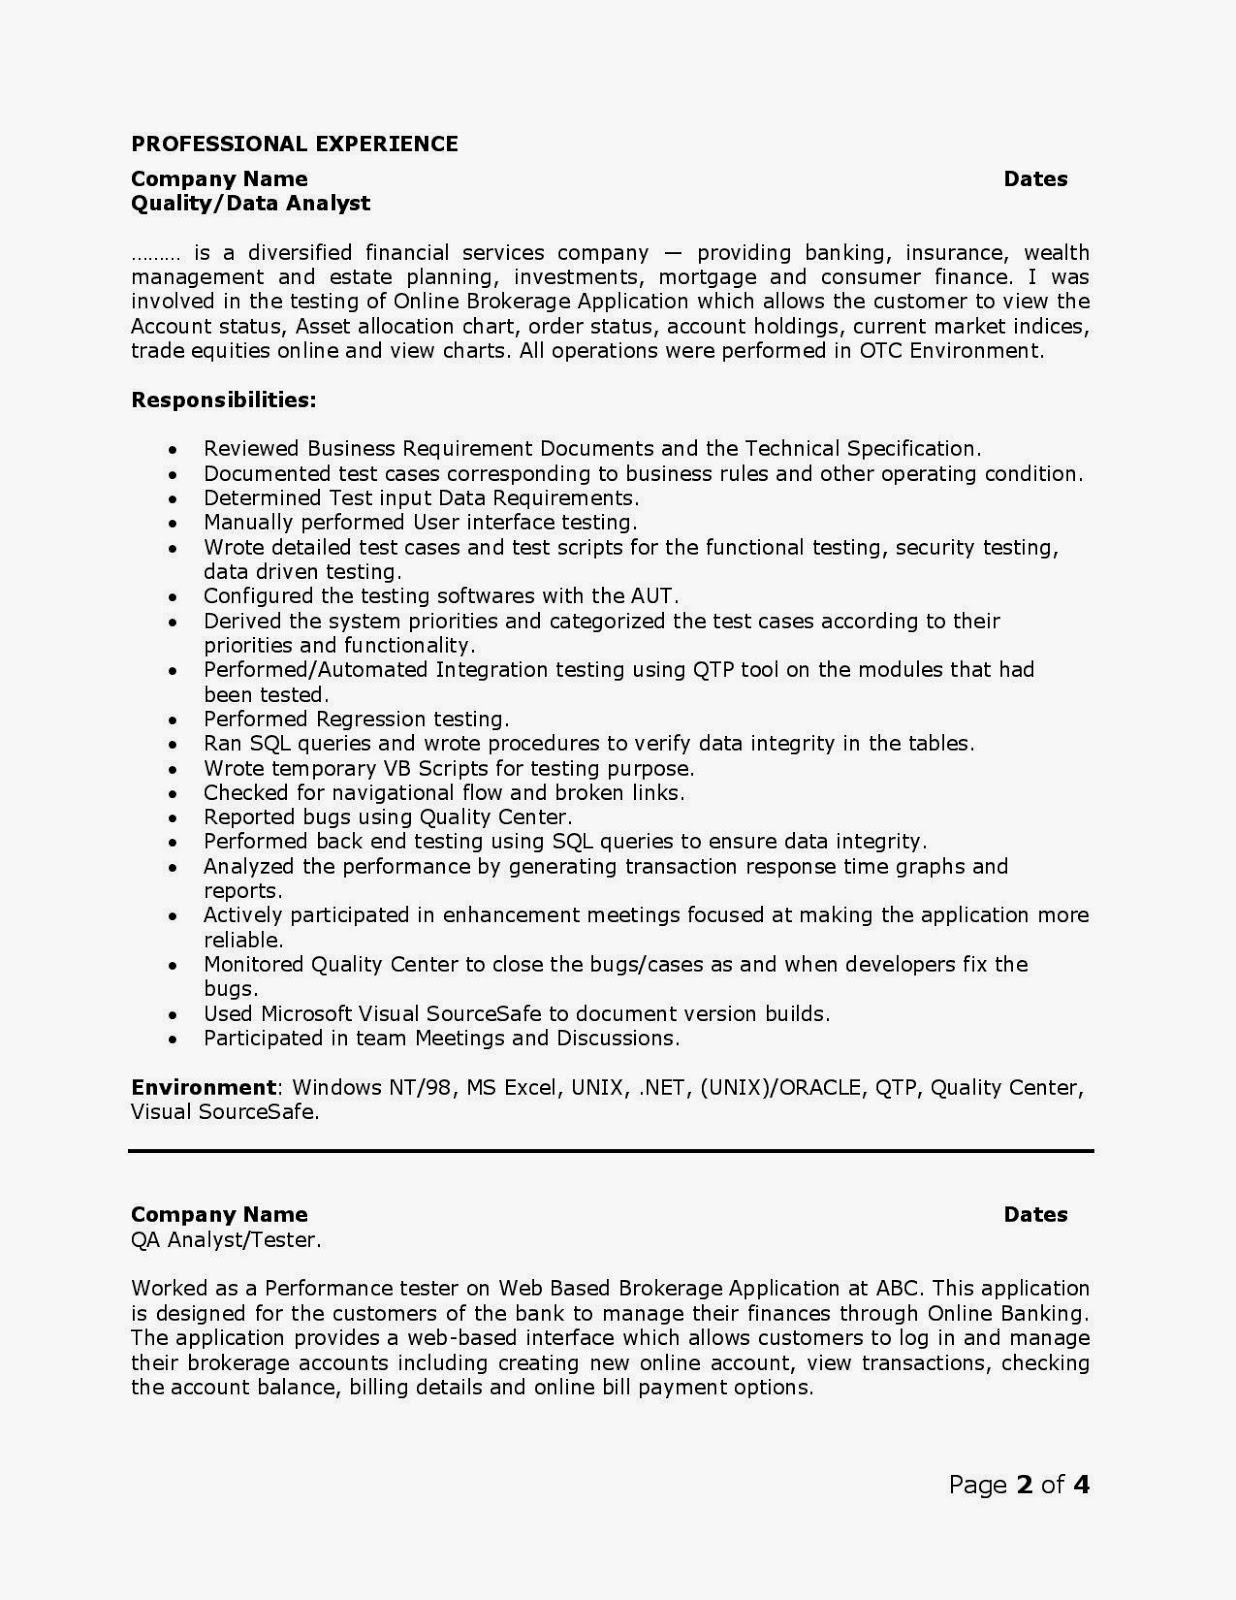 Sap Qm Resume Free Printable Resumes Online Funniest Resume Ever ...